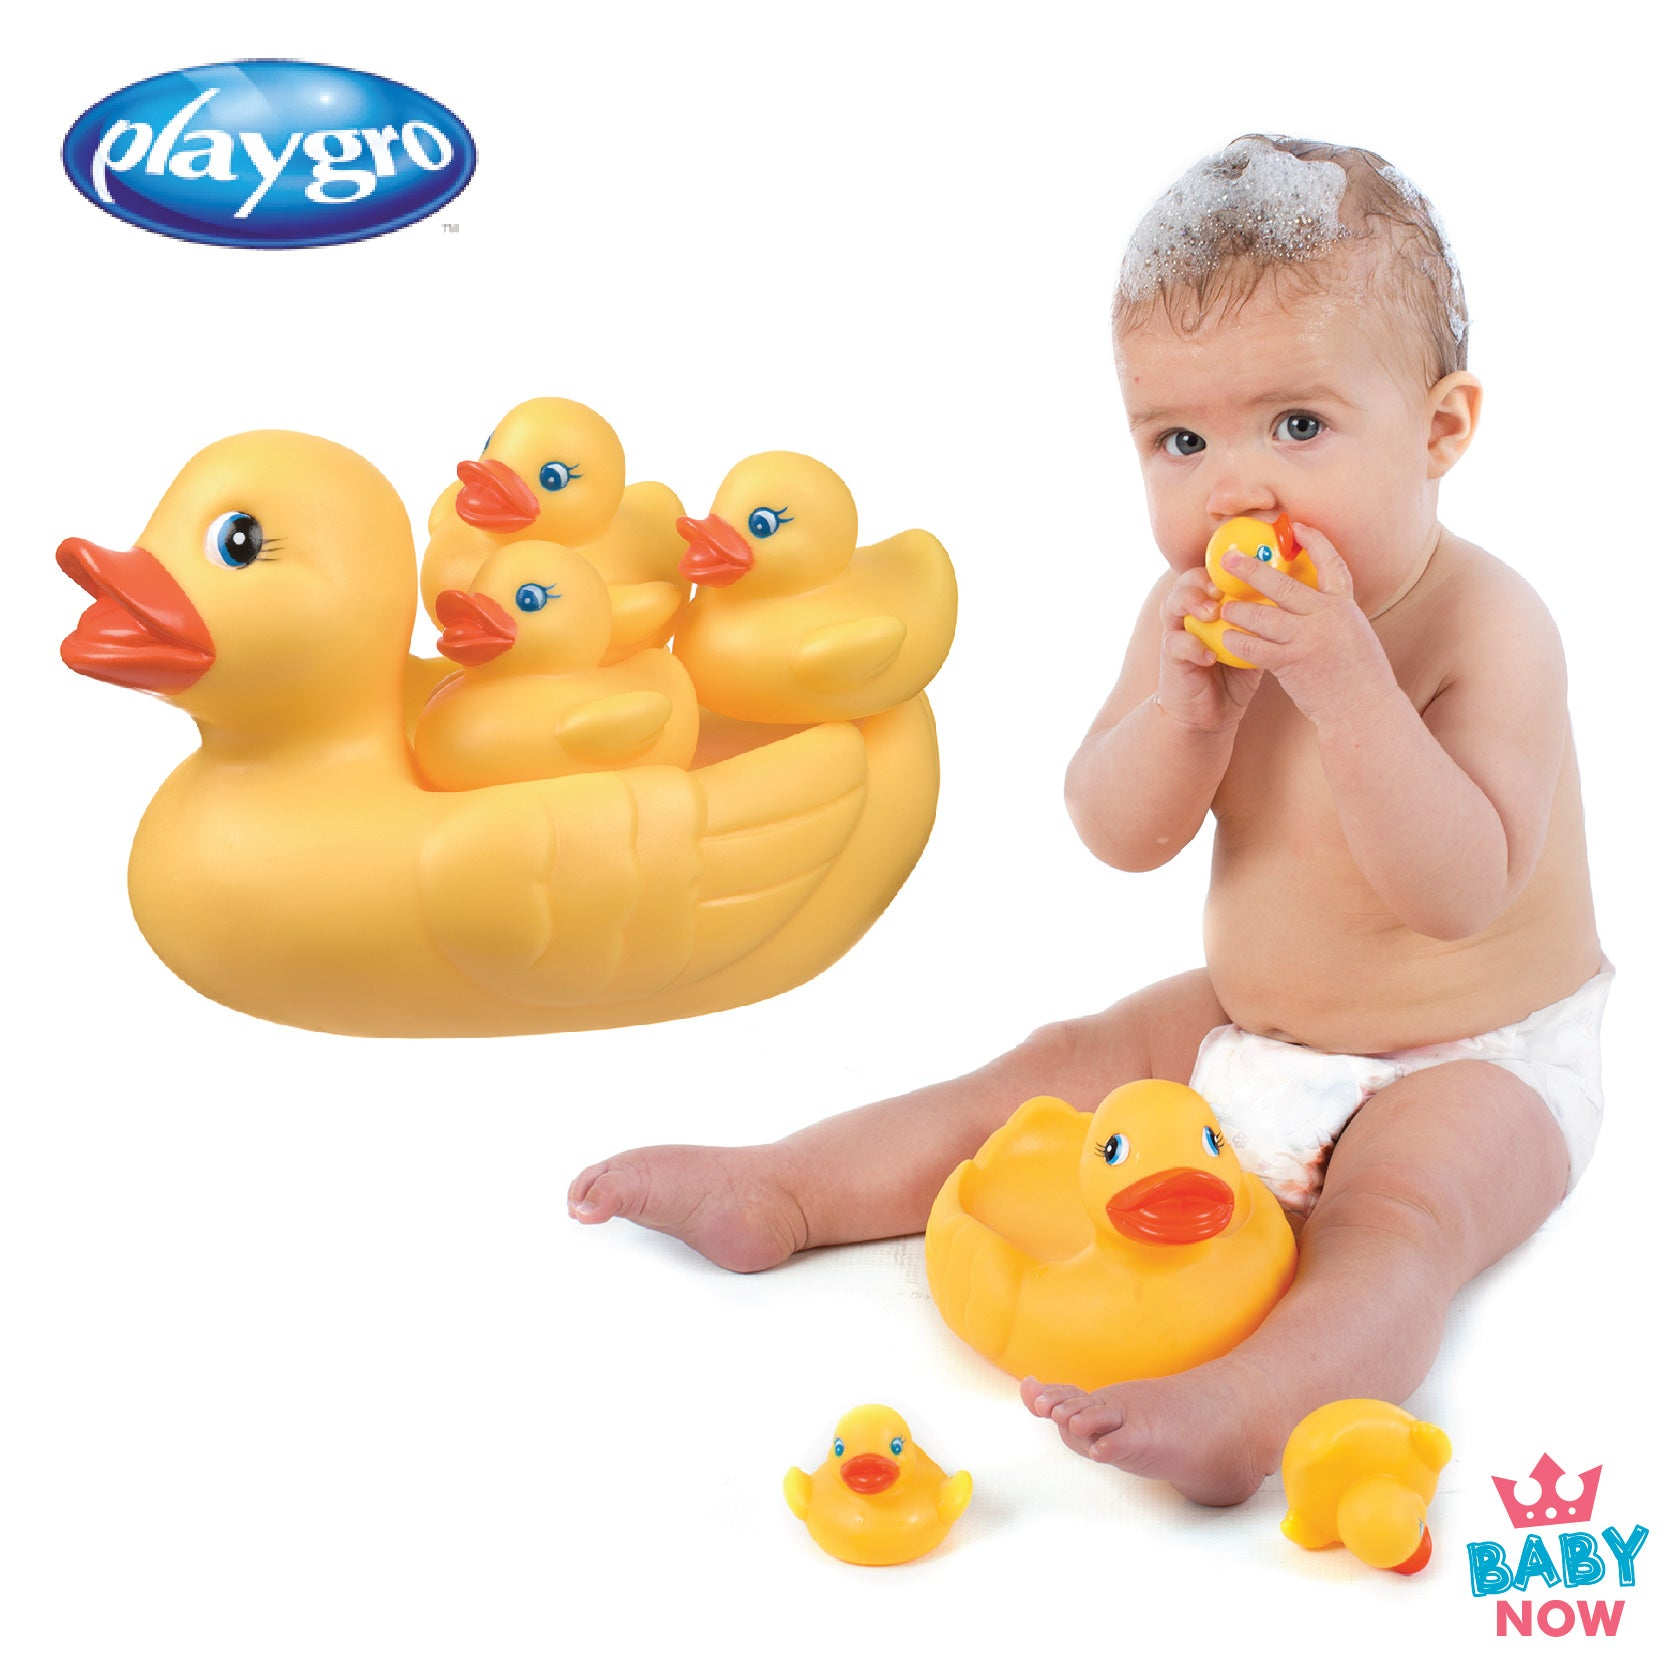 [PG0170338] Playgro Bath Duckie Family (Bath Toy Set)